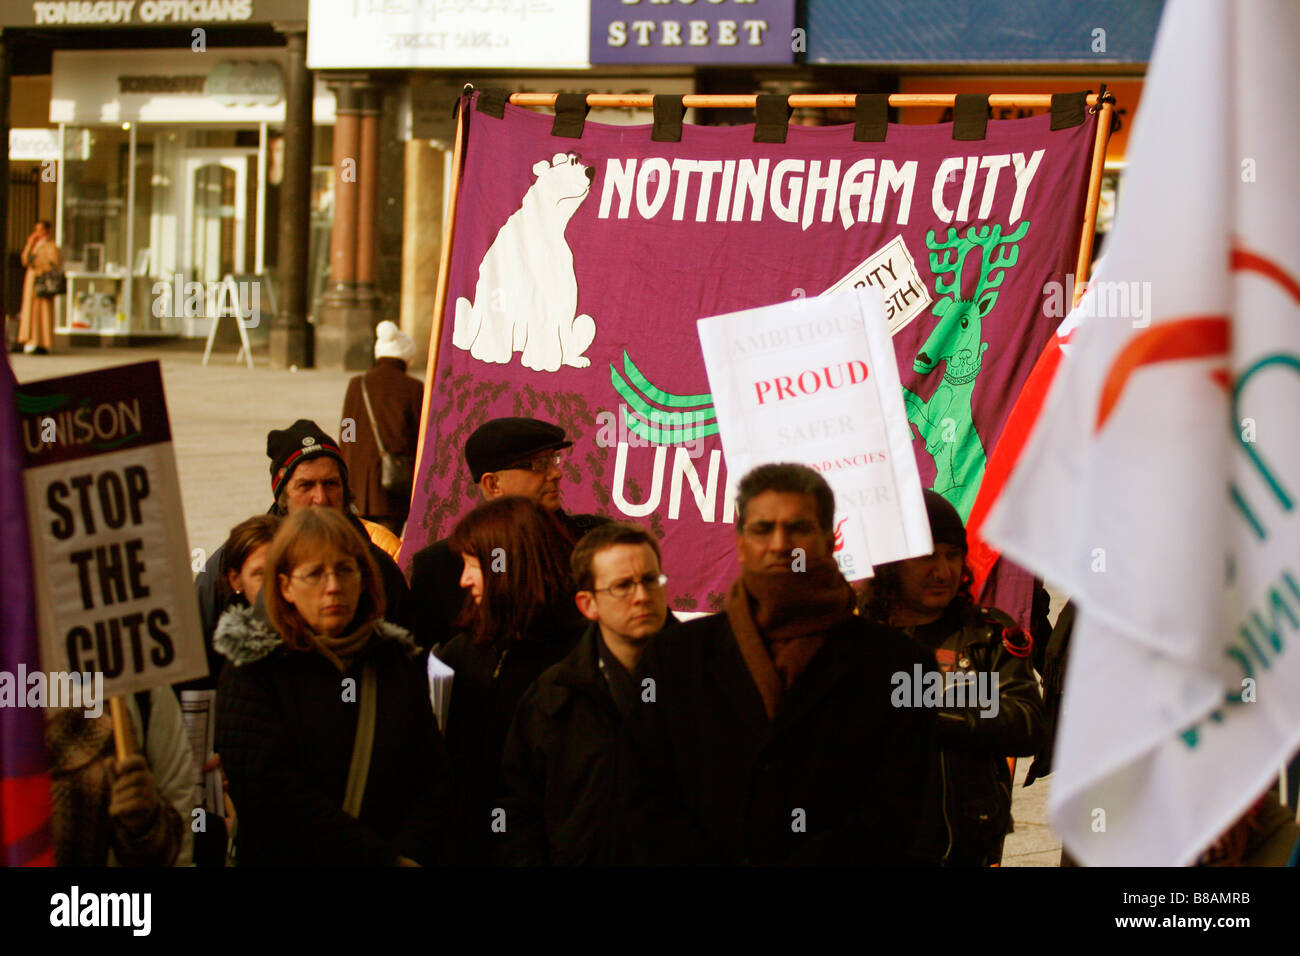 Unison banner JOINT TRADE UNION LOBBY 1 00 2 00 pm Tuesday 3 February 2009 Outside the Council House Old Market - Stock Image